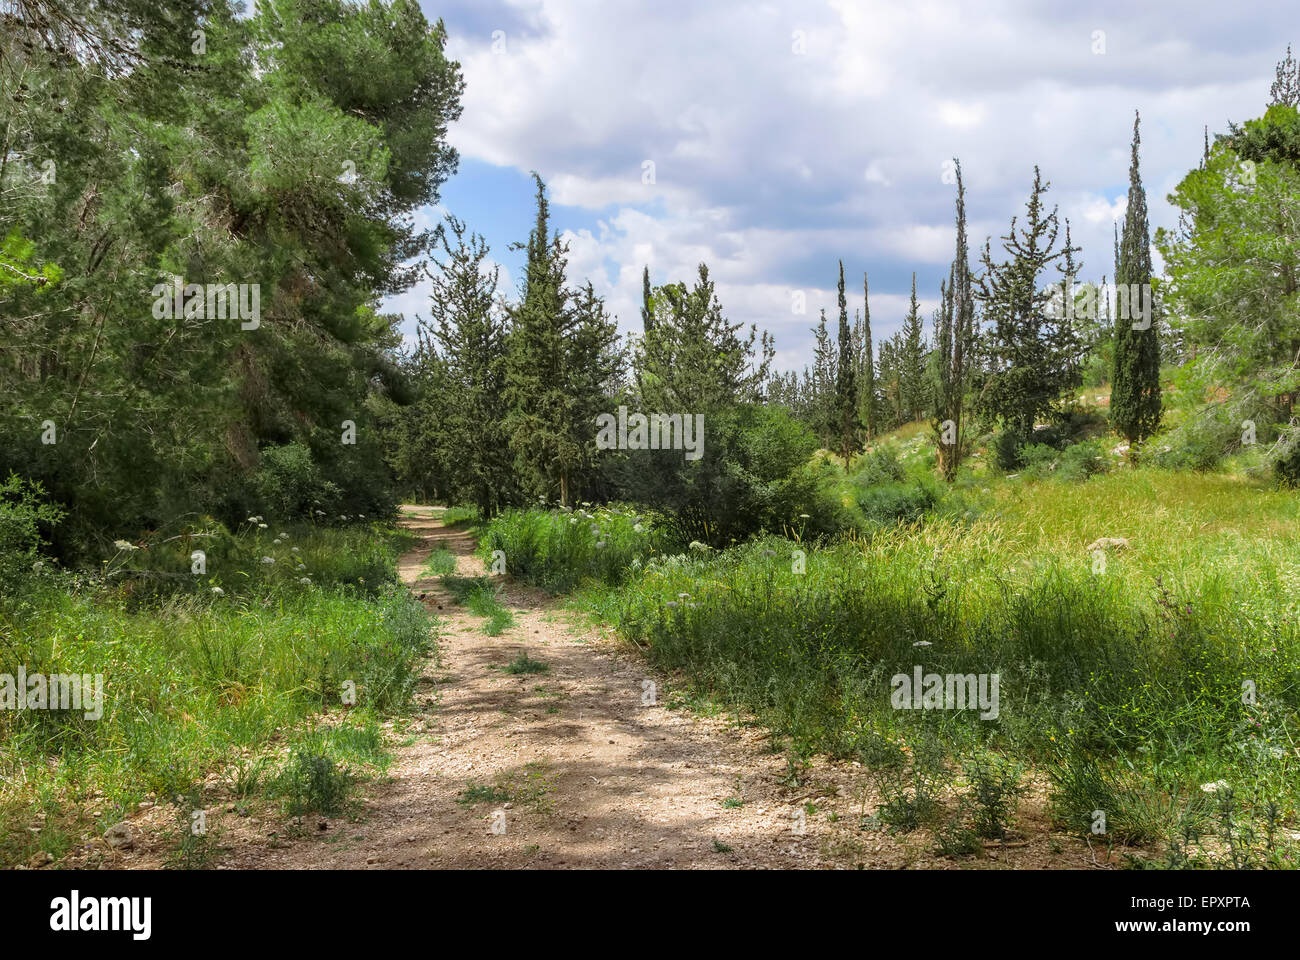 Empty hiking trail in the pine tree and cypress woods - Stock Image